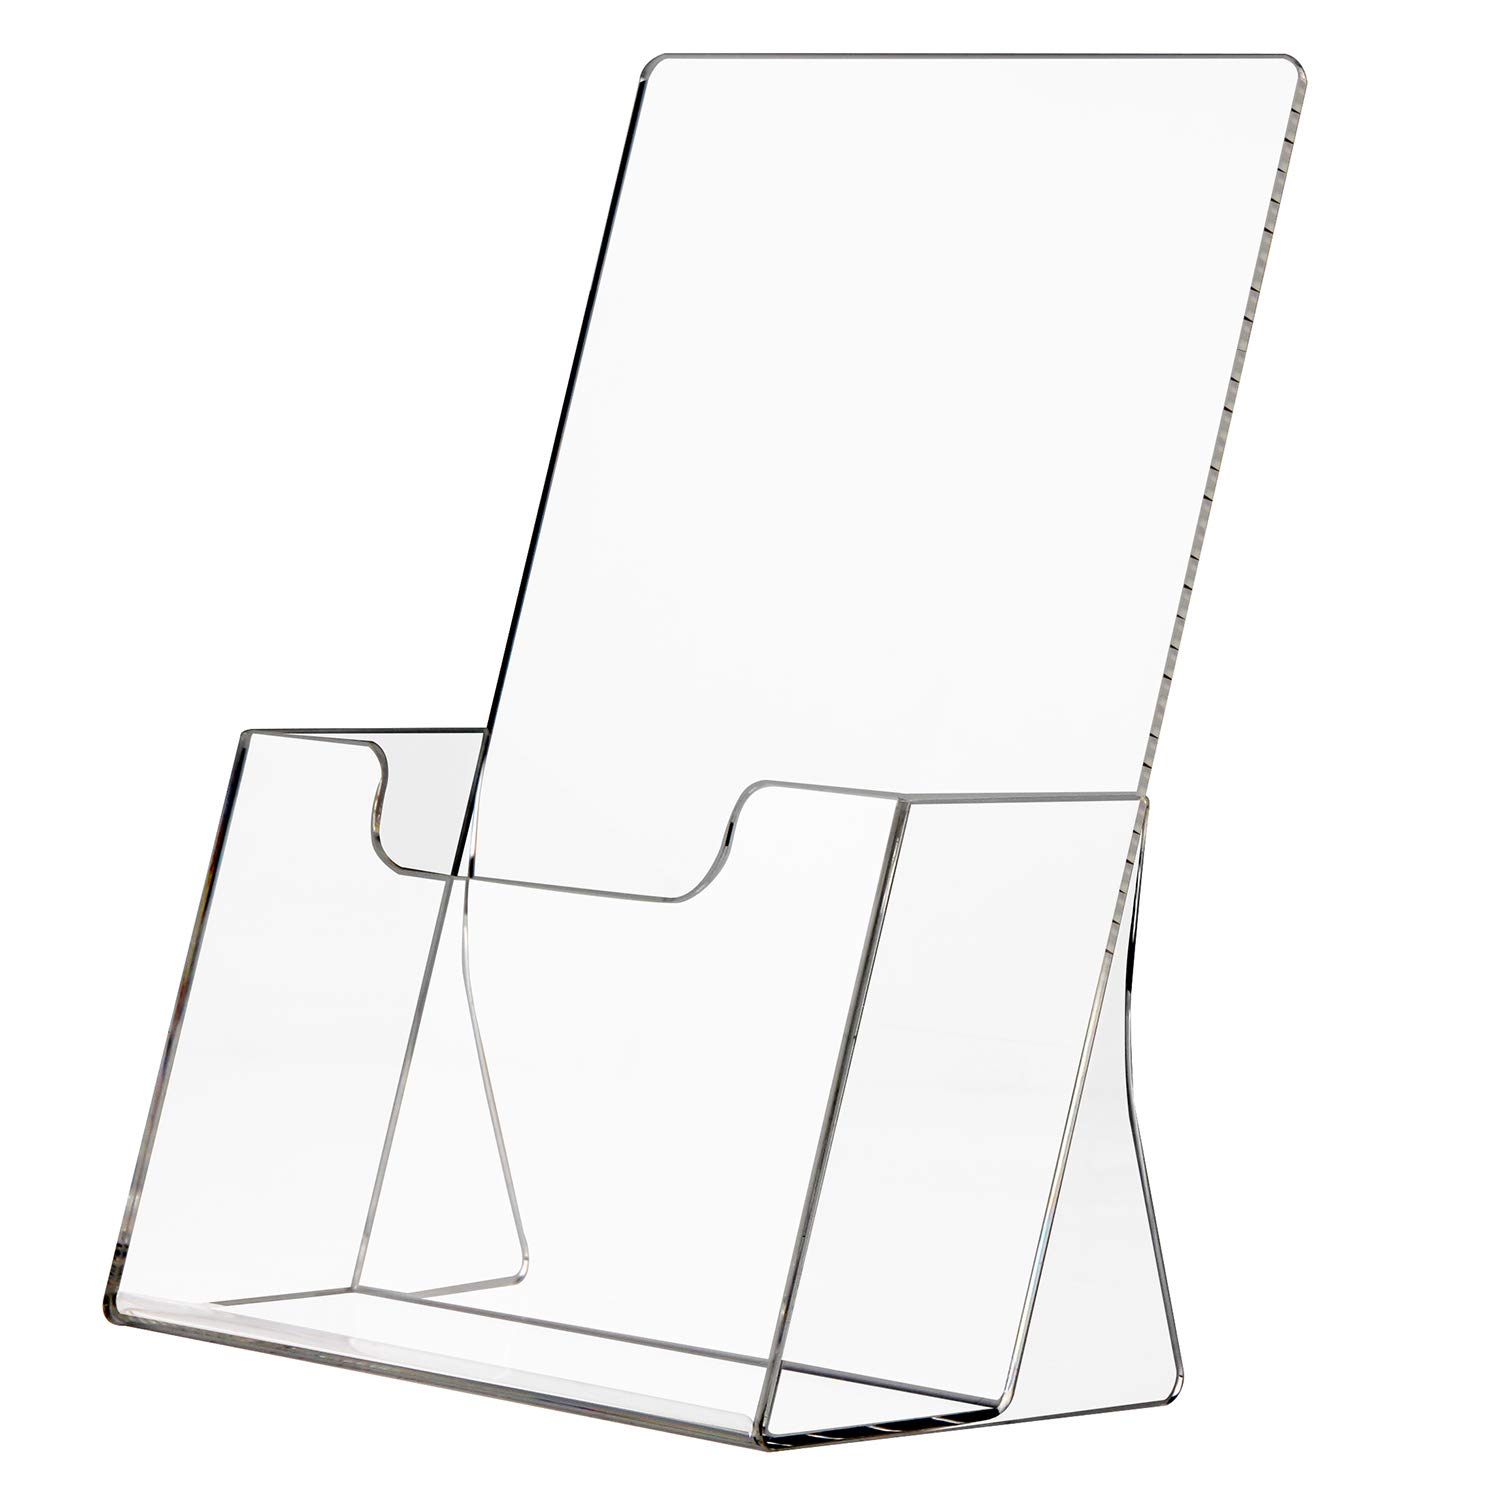 Clear Acrylic Brochure Wall Mount Sign Holder poster Sign Pocket with Business Card Holder